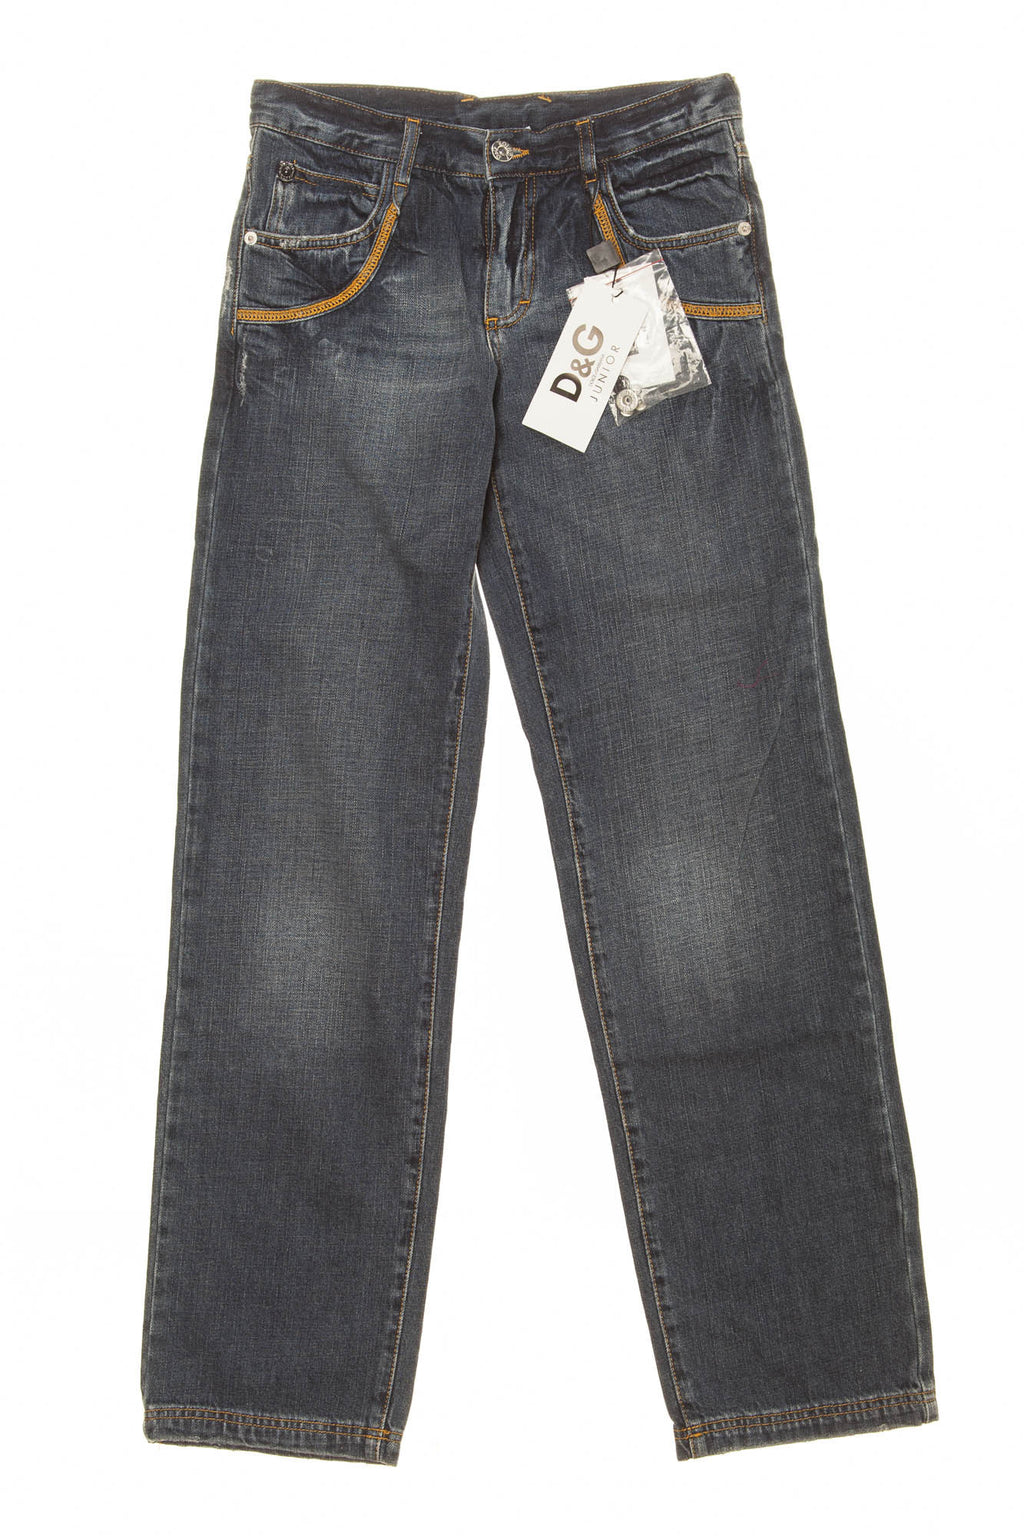 D & G Junior - Dark Wash Denim Jeans - 12